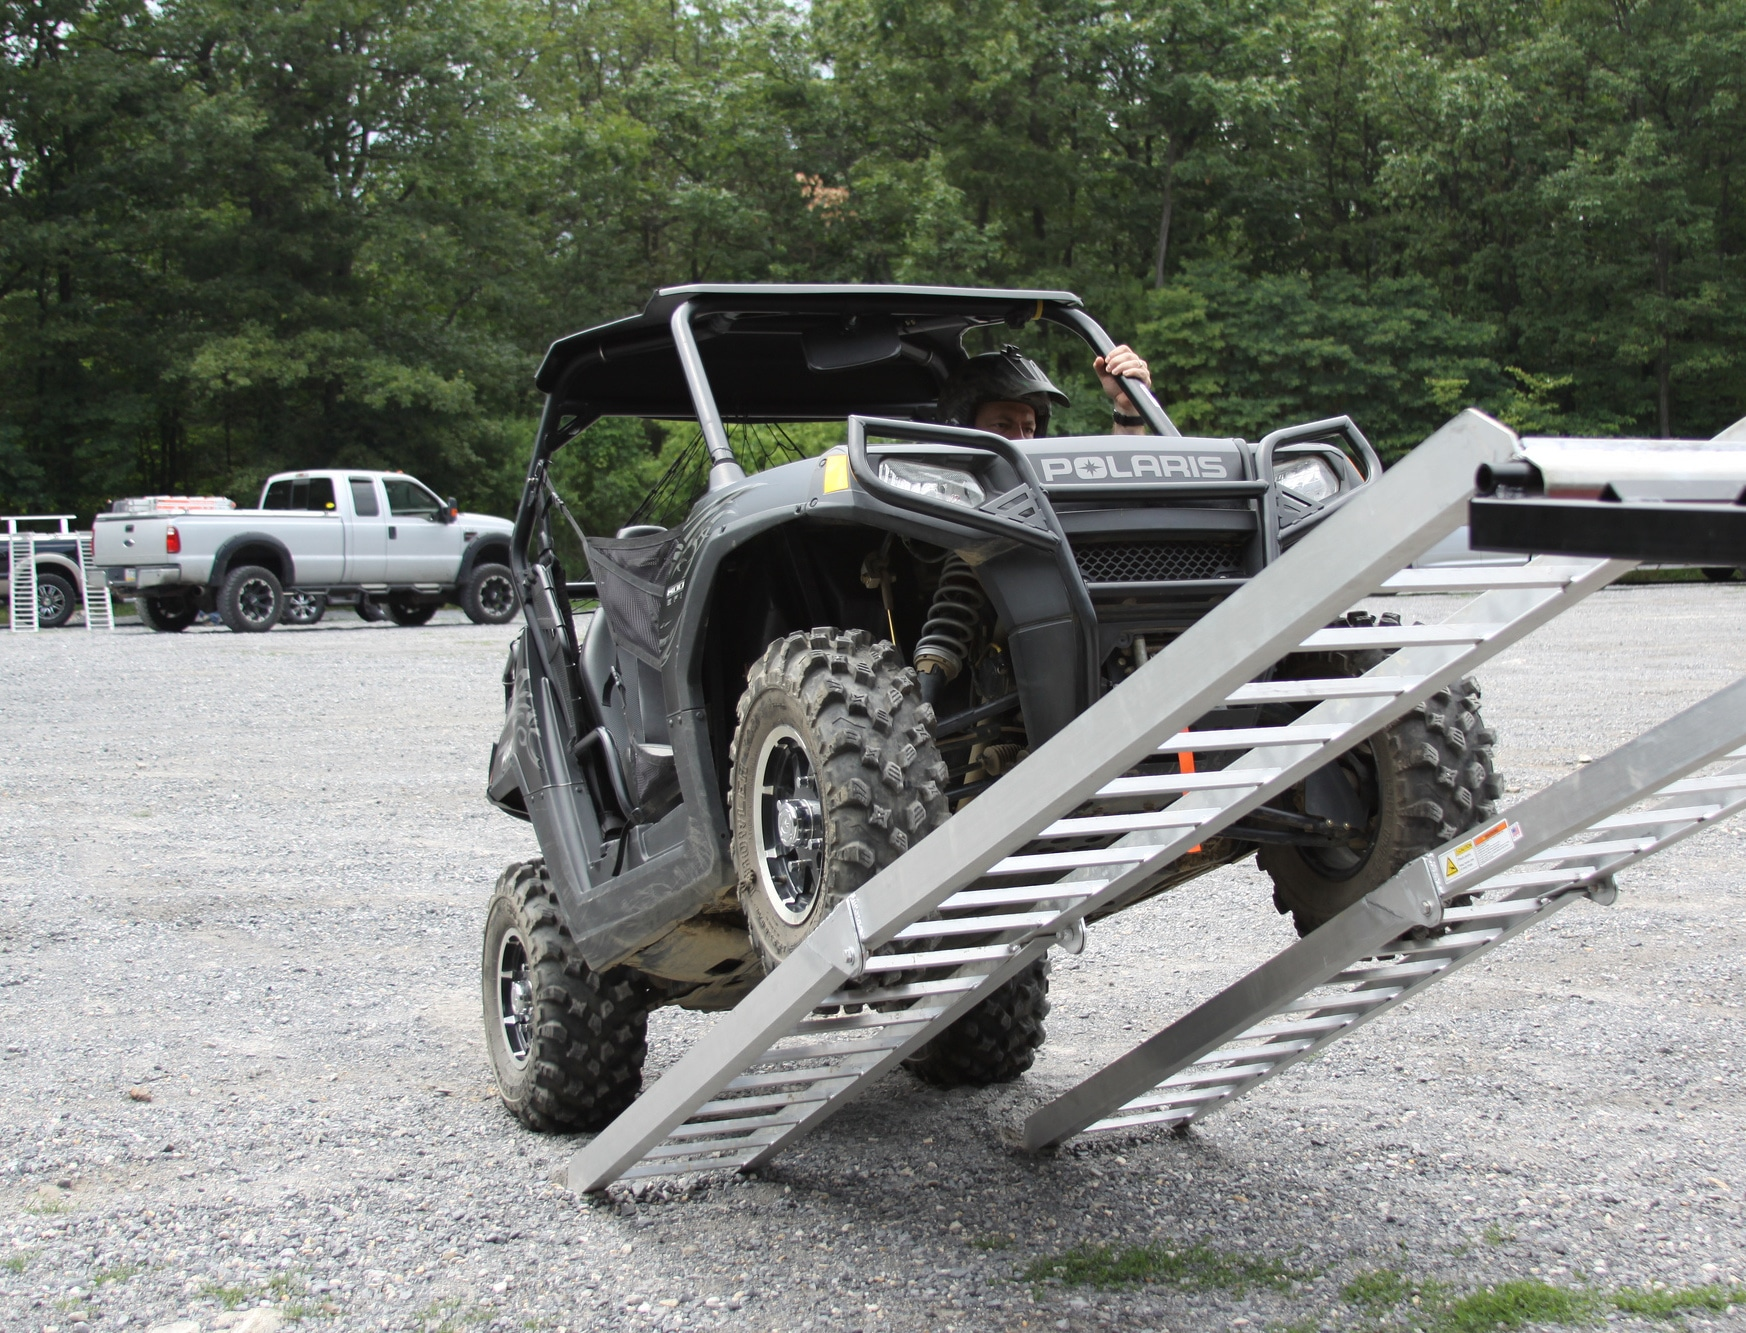 Ship a Polaris RZR across the country - All Day Auto Transport